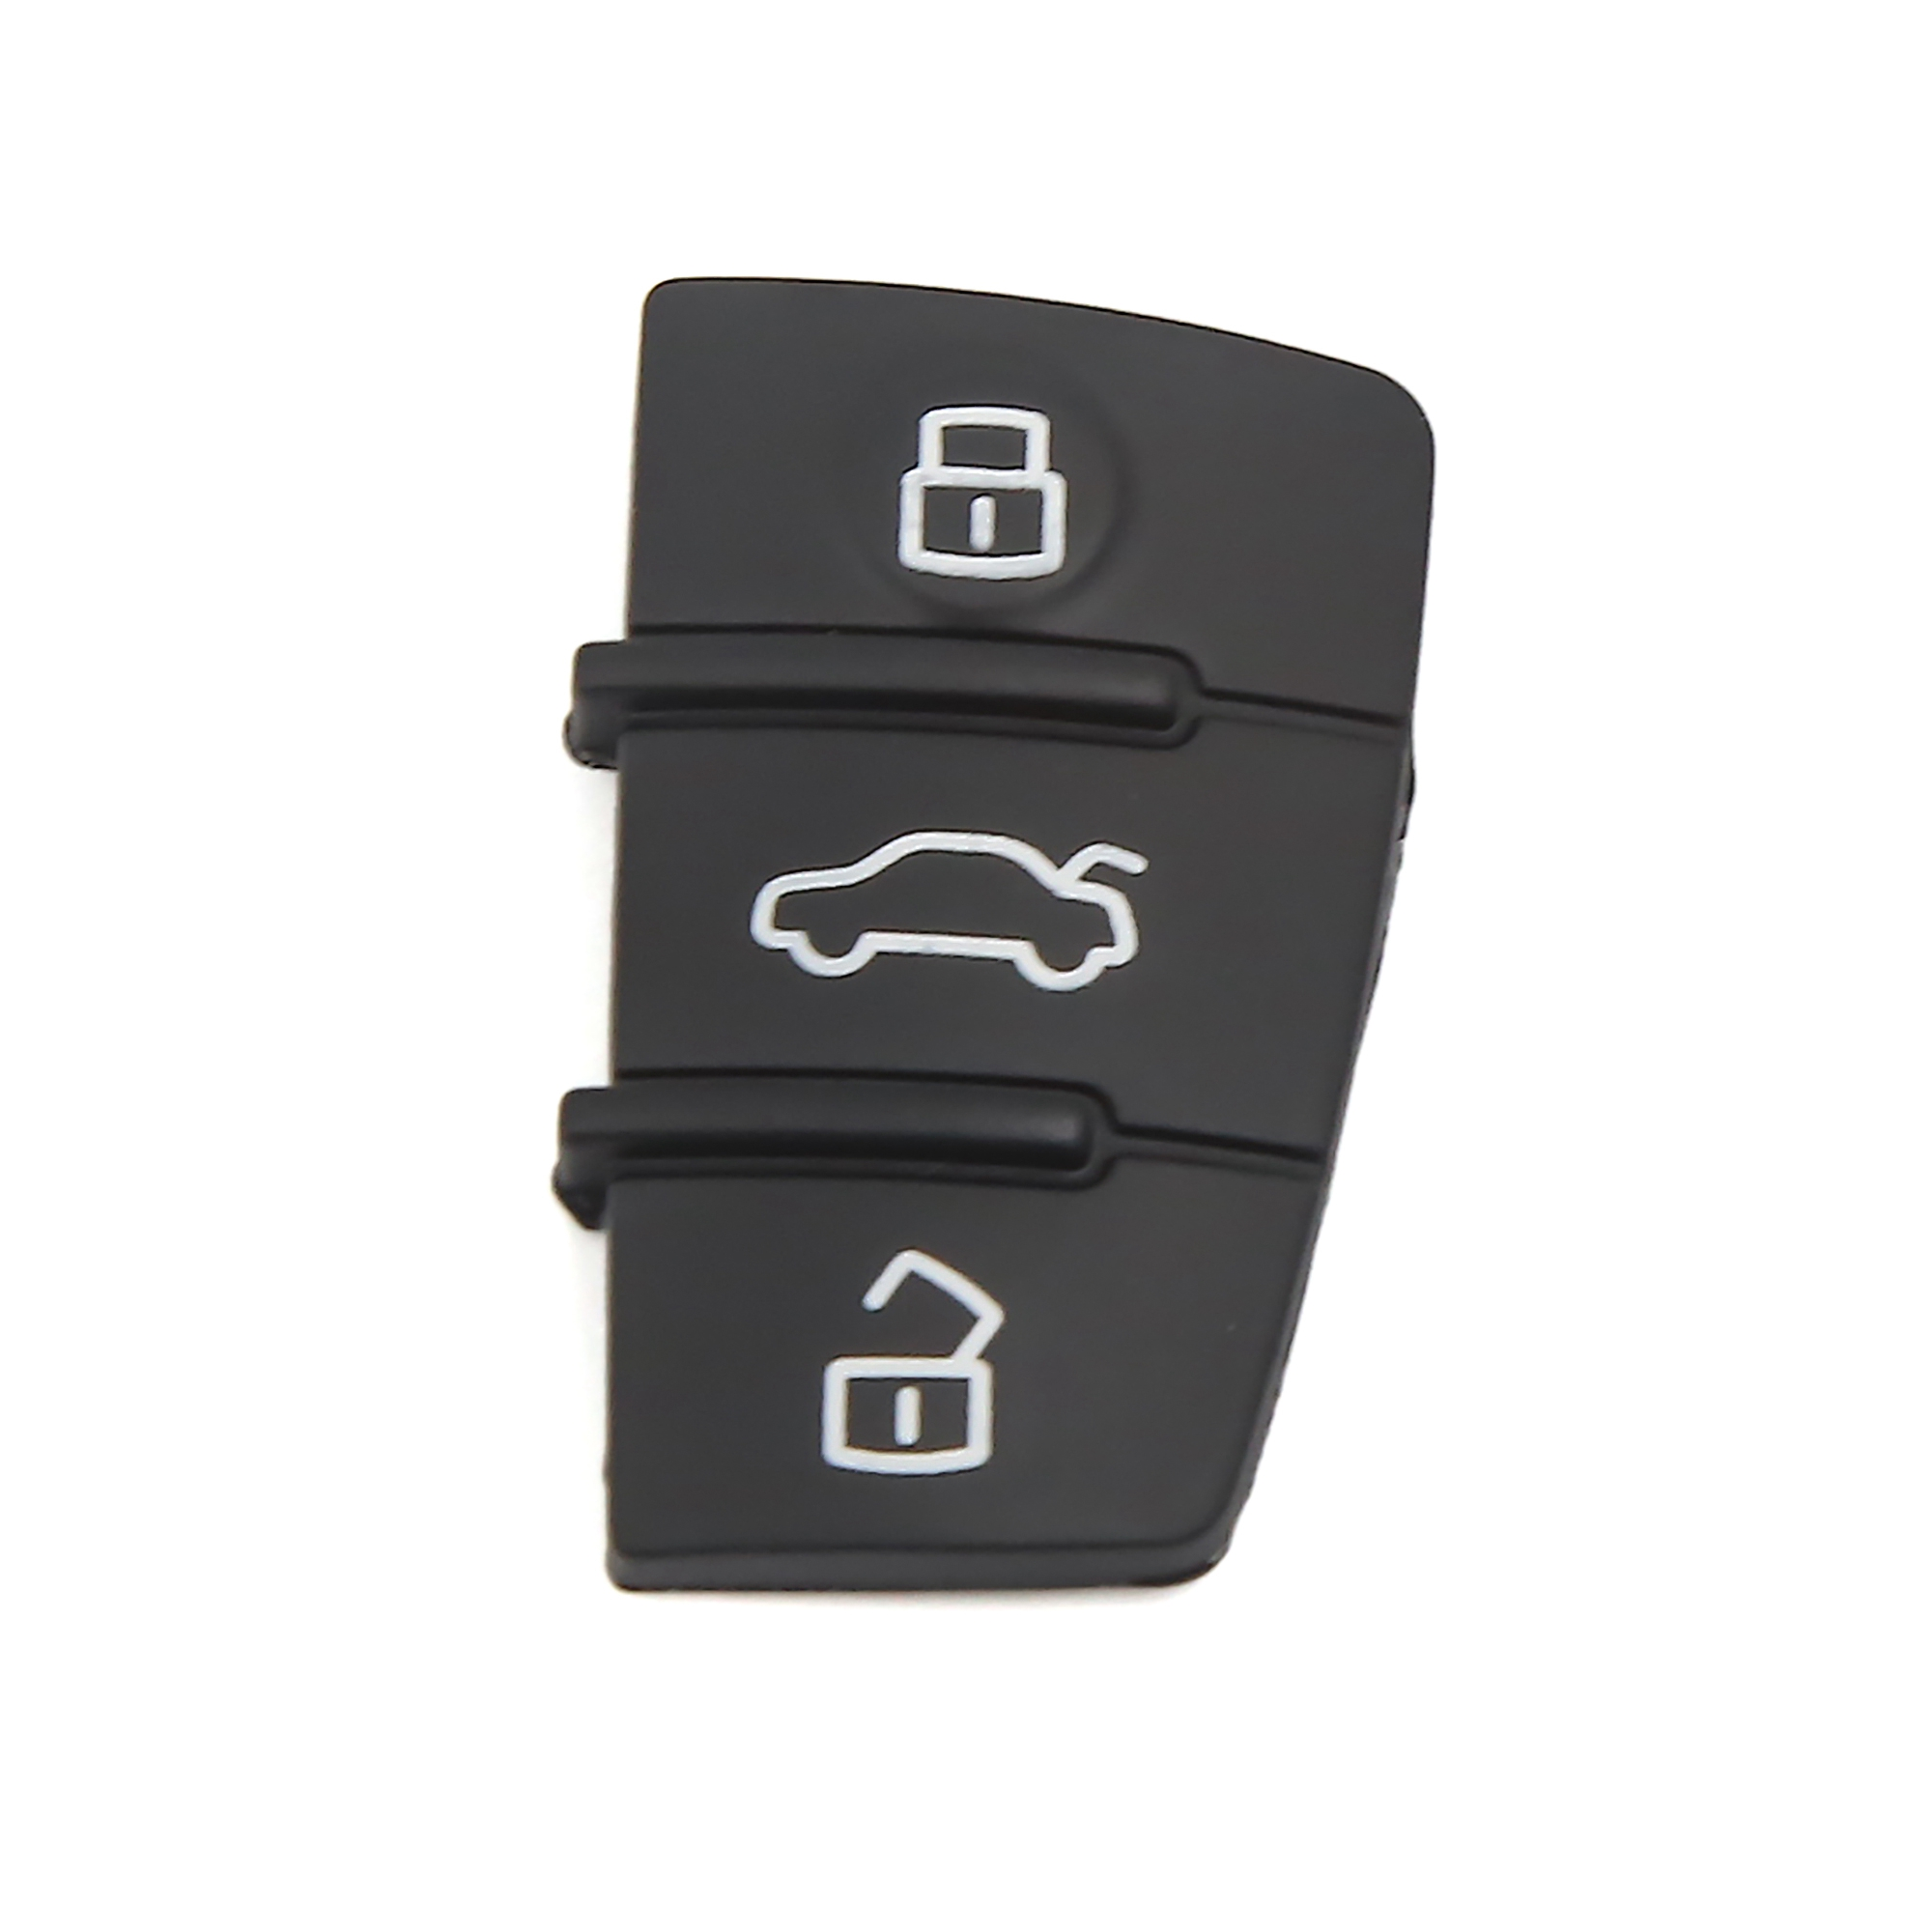 Car Key Remote Control 3 Button Rubber Pad Cover for Audi A3 A4 A6 Q5 Q7